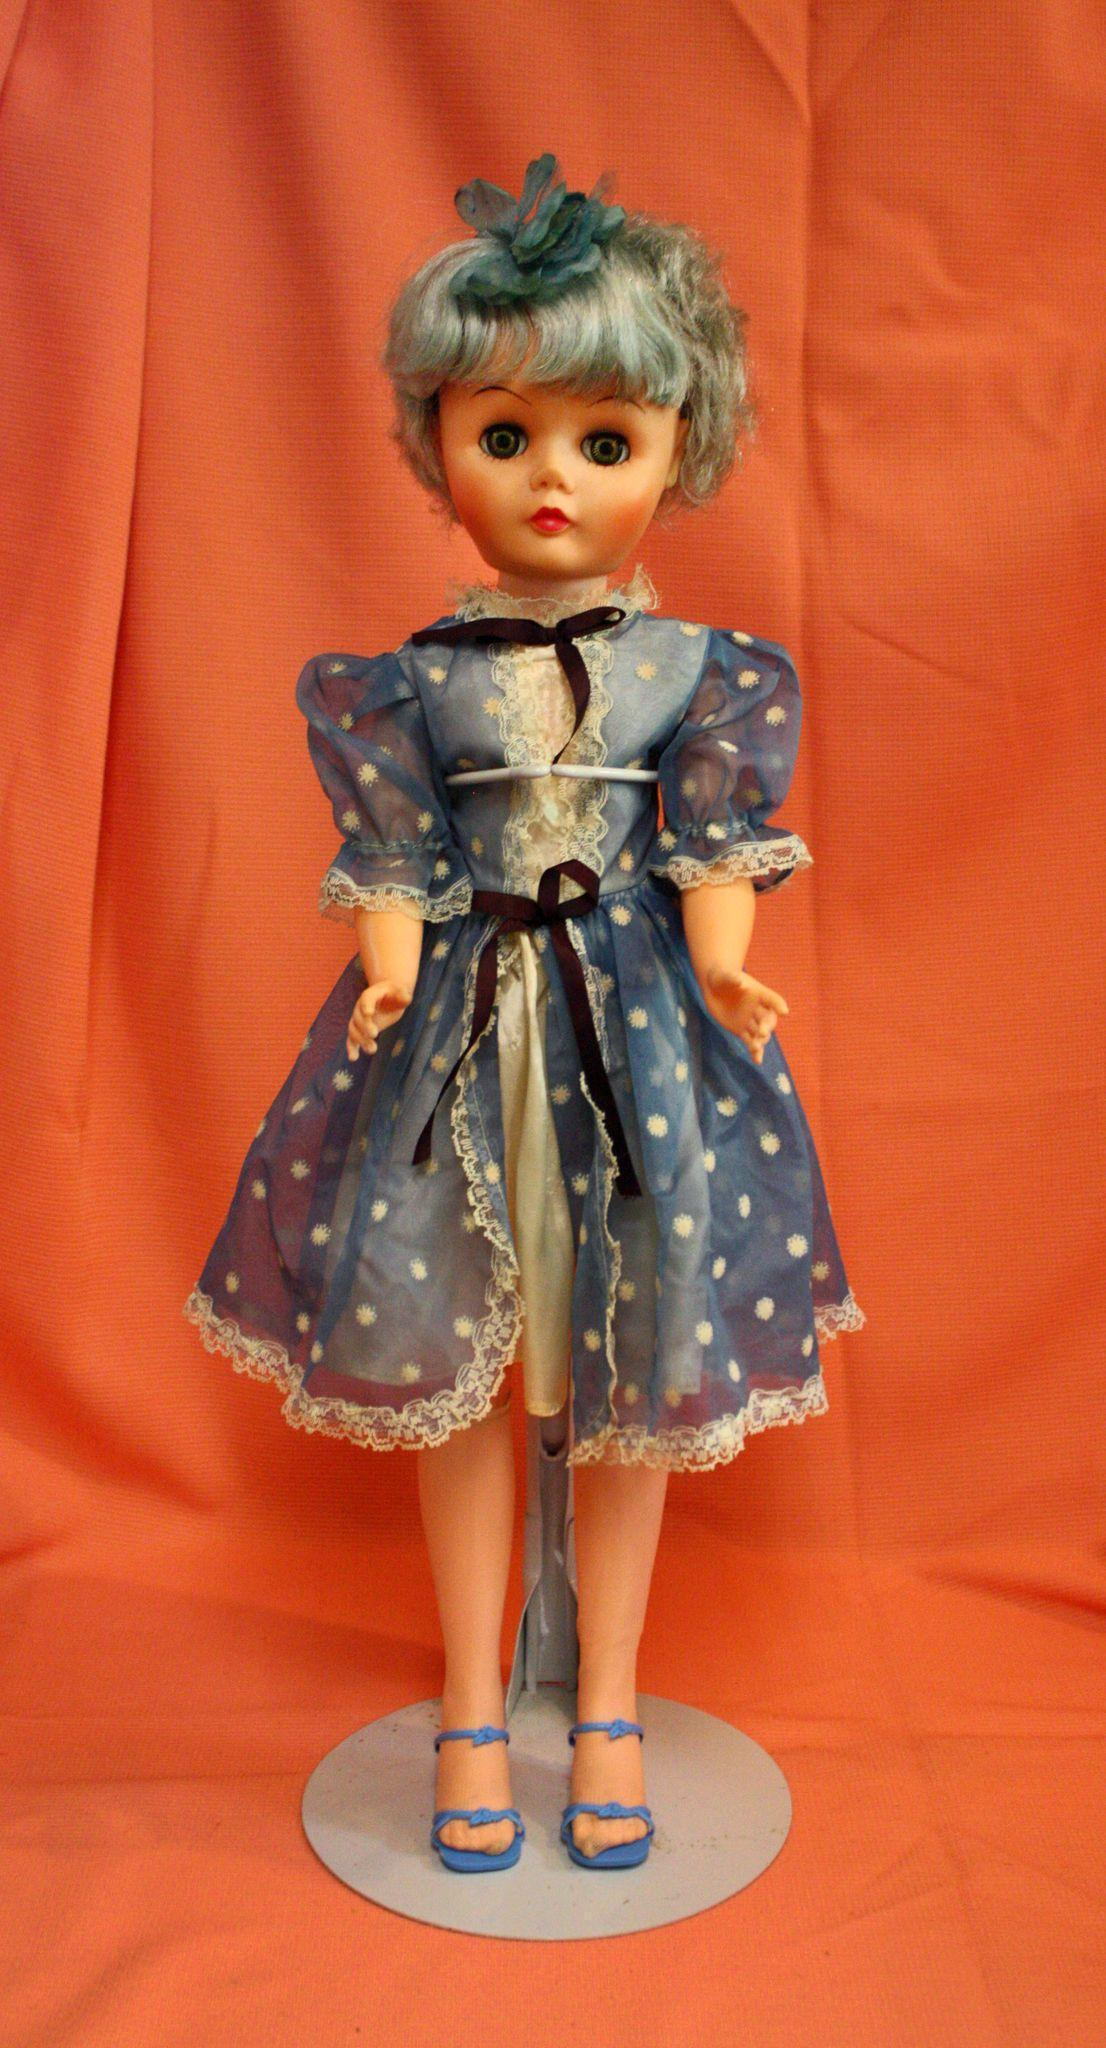 Vintage Vinyl 1950's Fashion Doll with Original Blue Hair and Dress